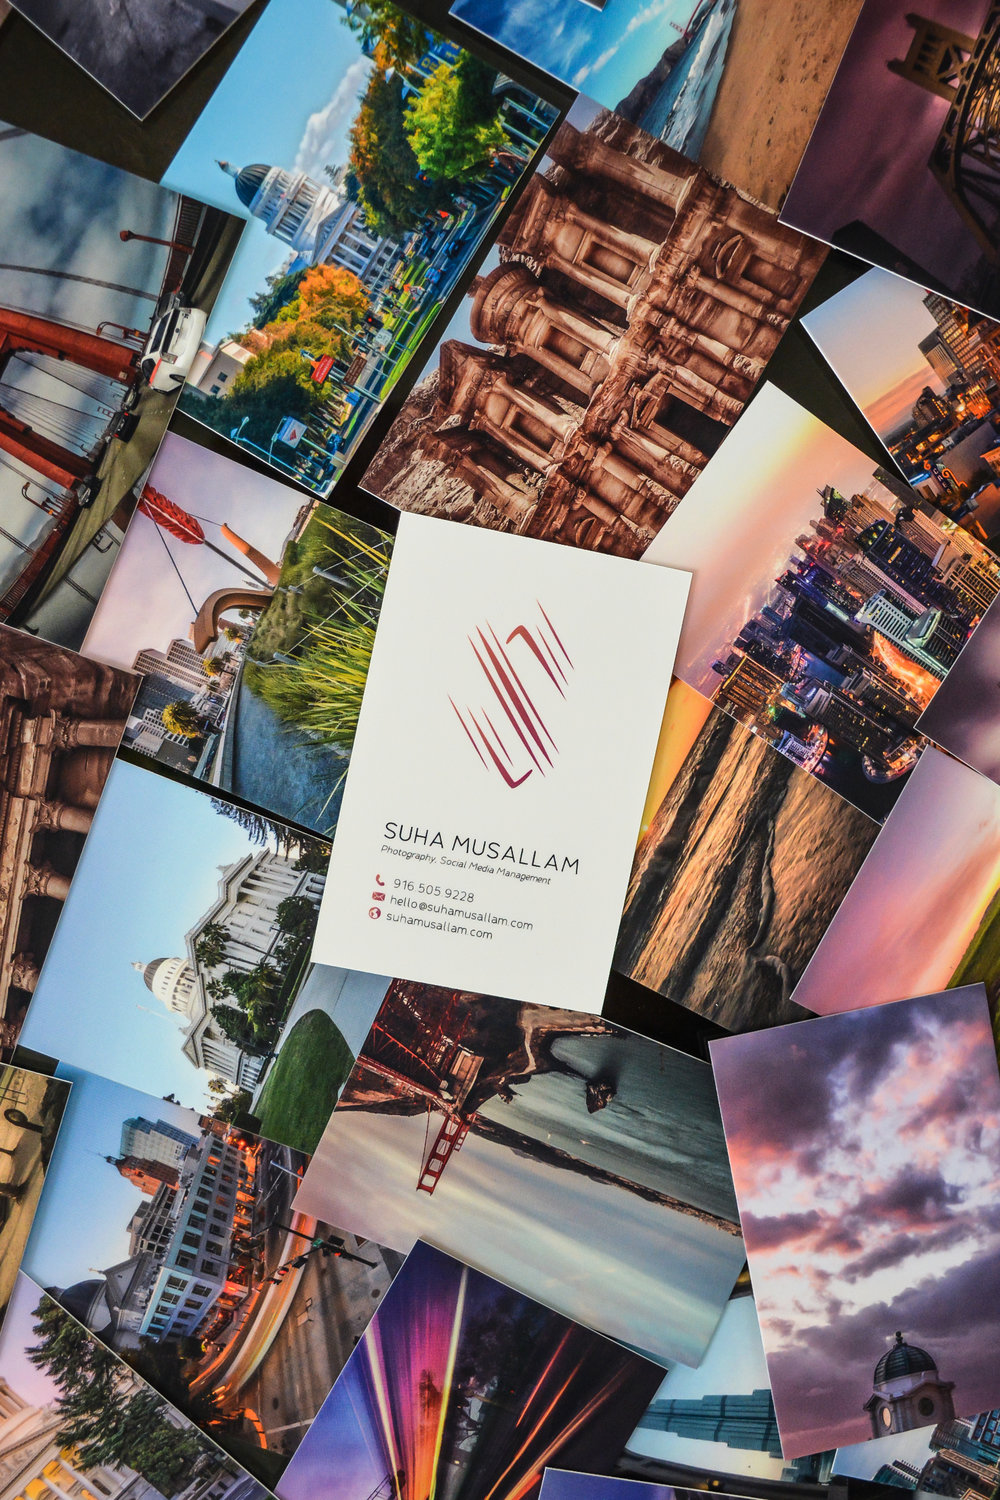 Moo review suha musallam this was my first purchase from moo but before even starting on designing my business card i ordered the moo business card sample pack that they ship at a reheart Image collections